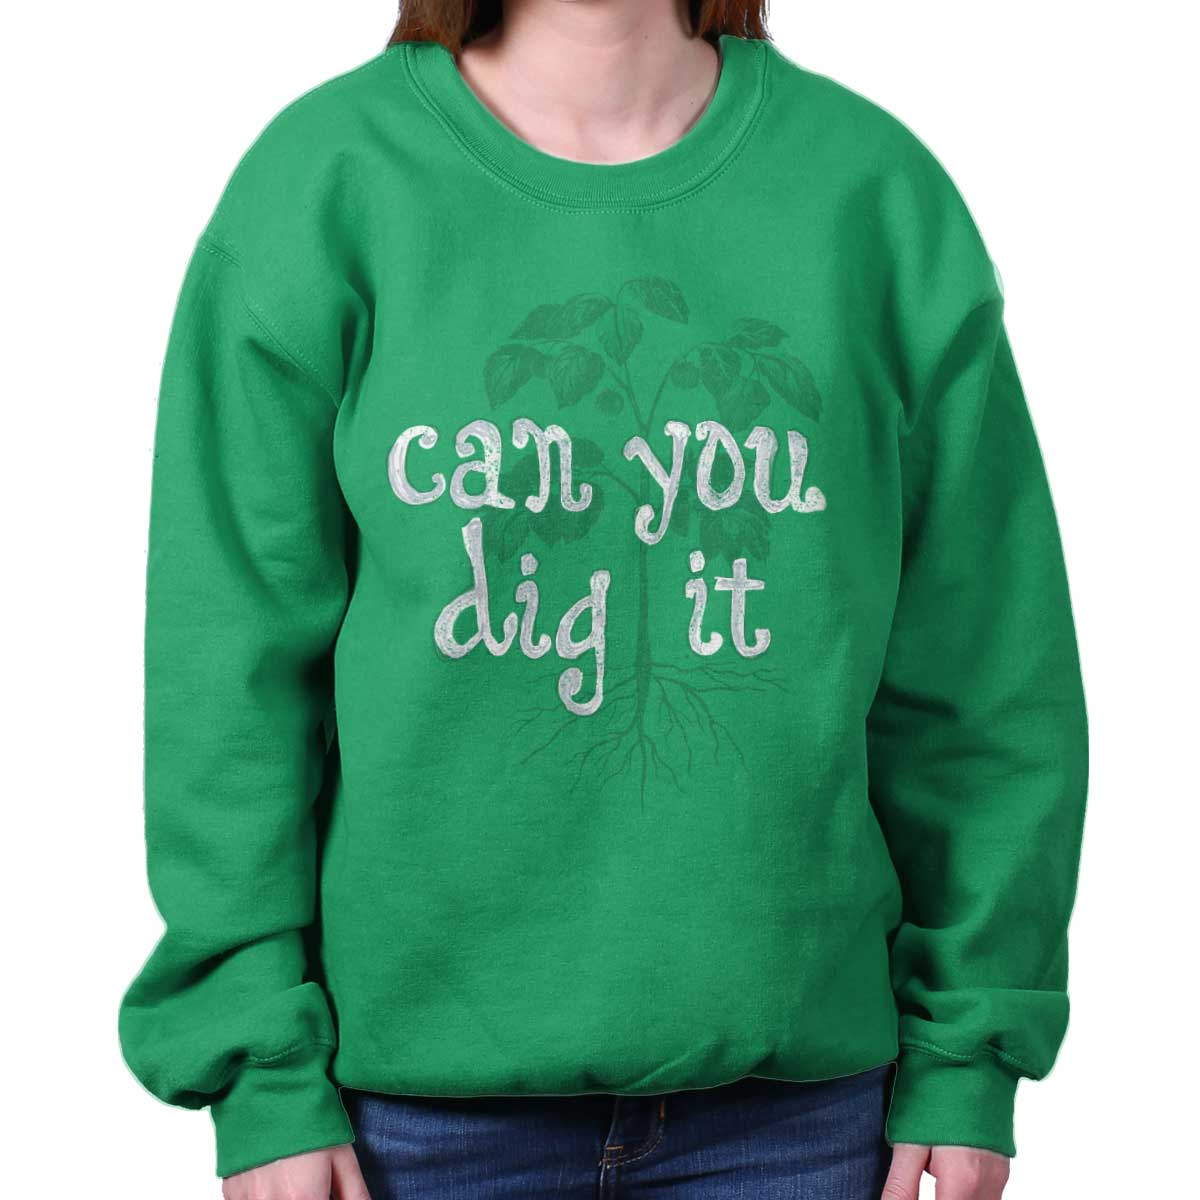 Dig It Home Funny Shirt | Cool Home Gardening Gift Cute Edgy Sweatshirt